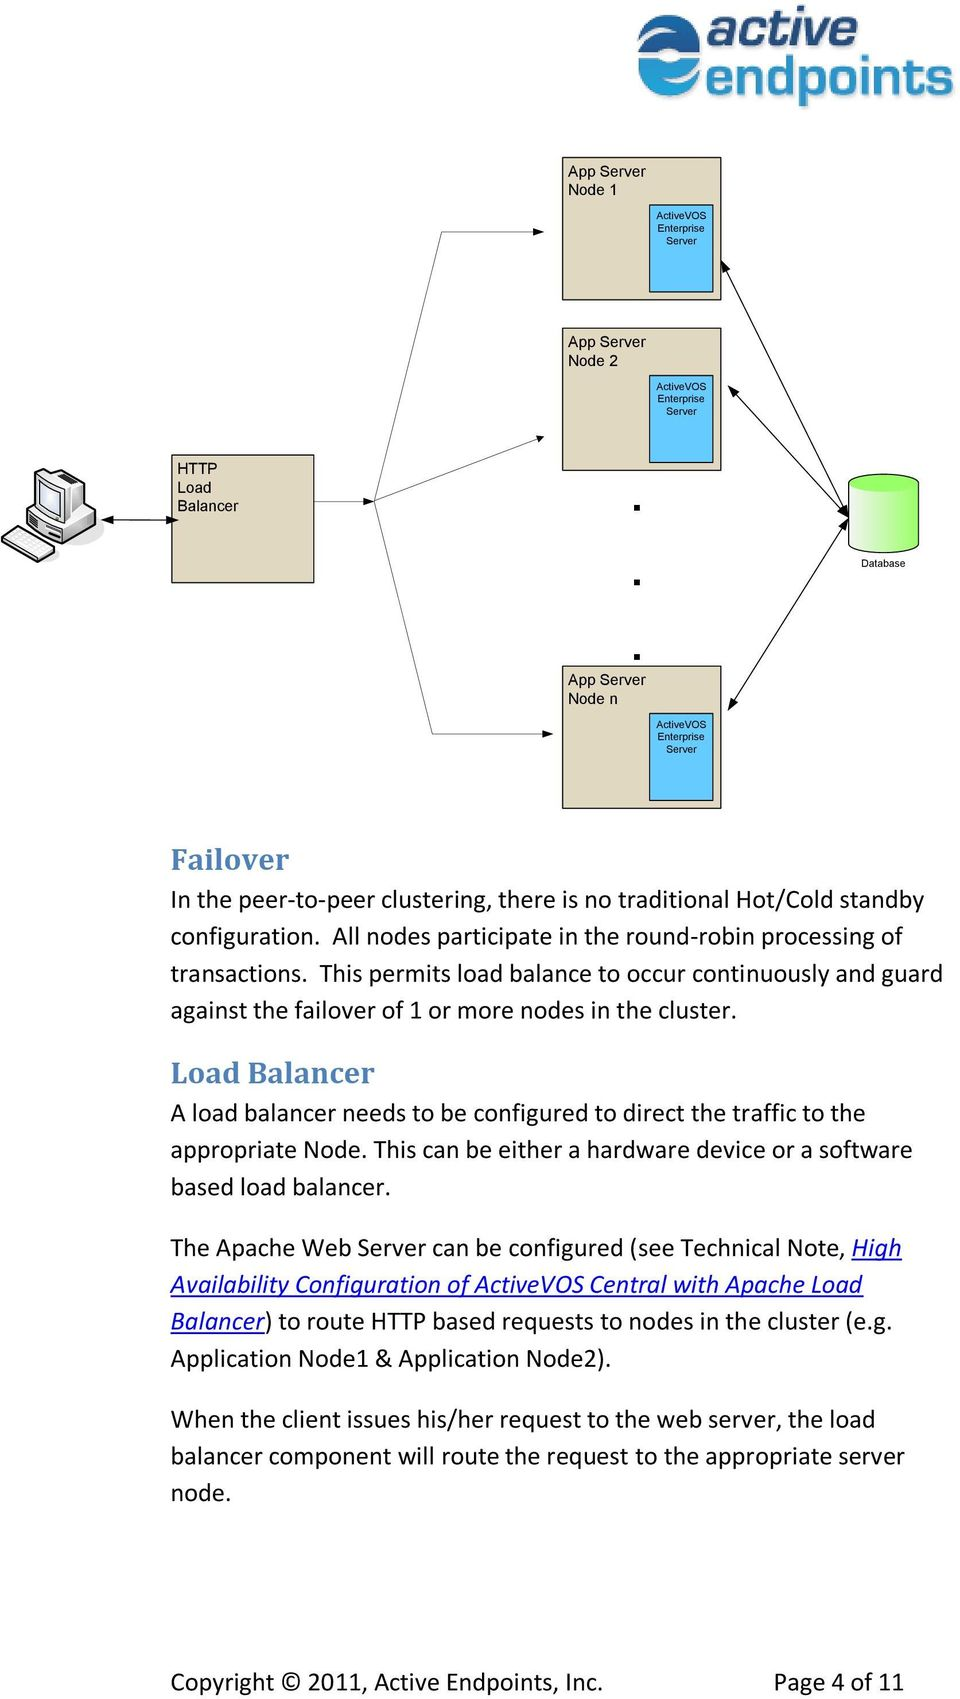 Load Balancer A load balancer needs to be configured to direct the traffic to the appropriate Node. This can be either a hardware device or a software based load balancer.